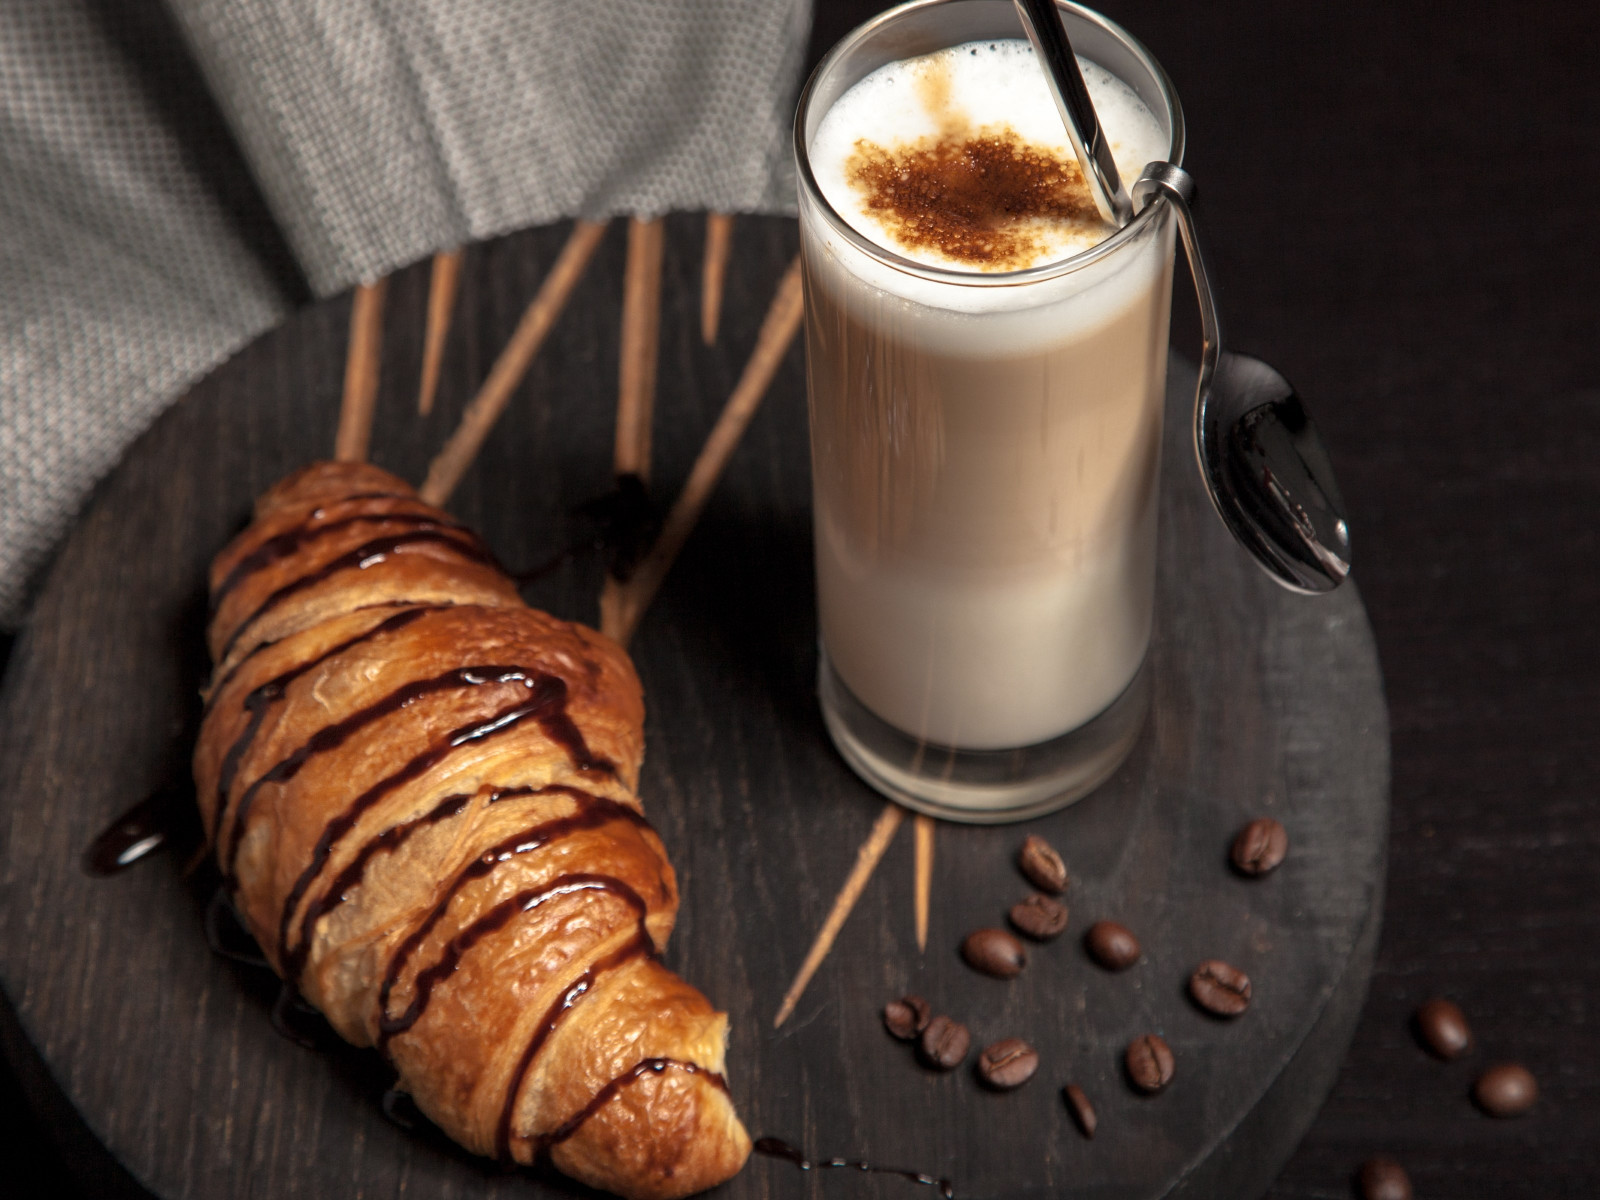 Cappuccino and chocolate croissant wallpaper 1600x1200